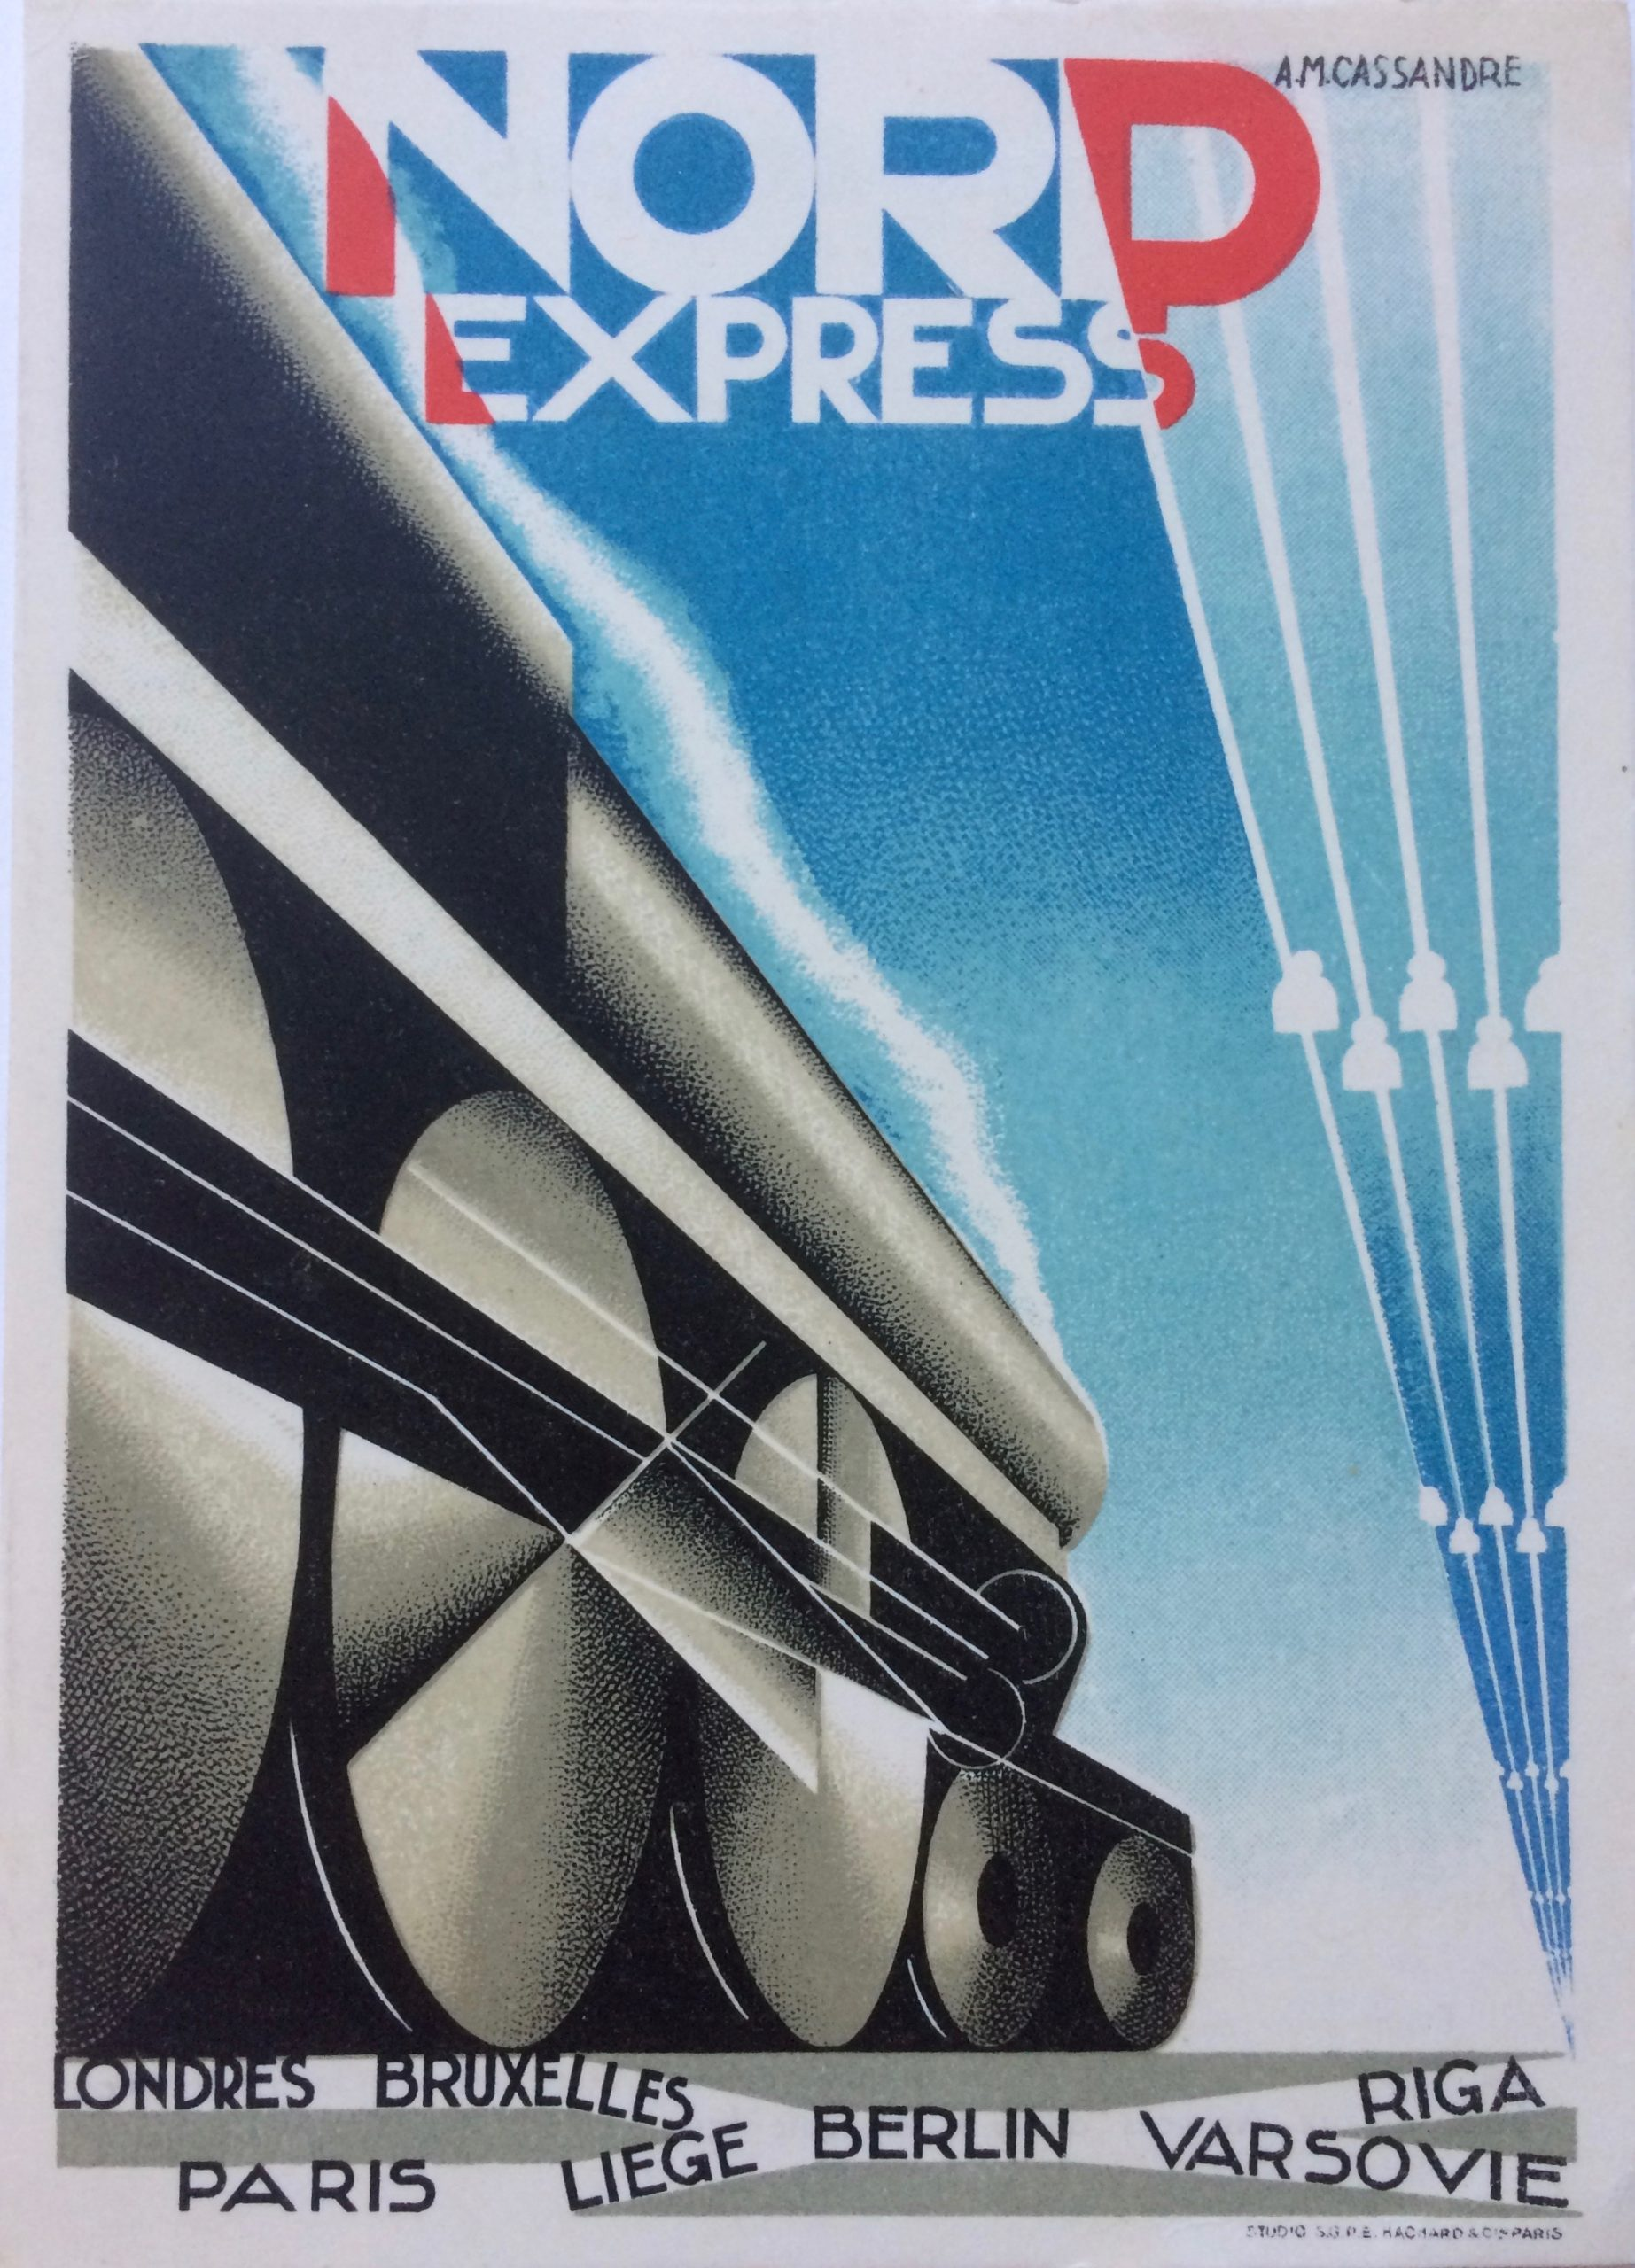 Nord Express advertising card